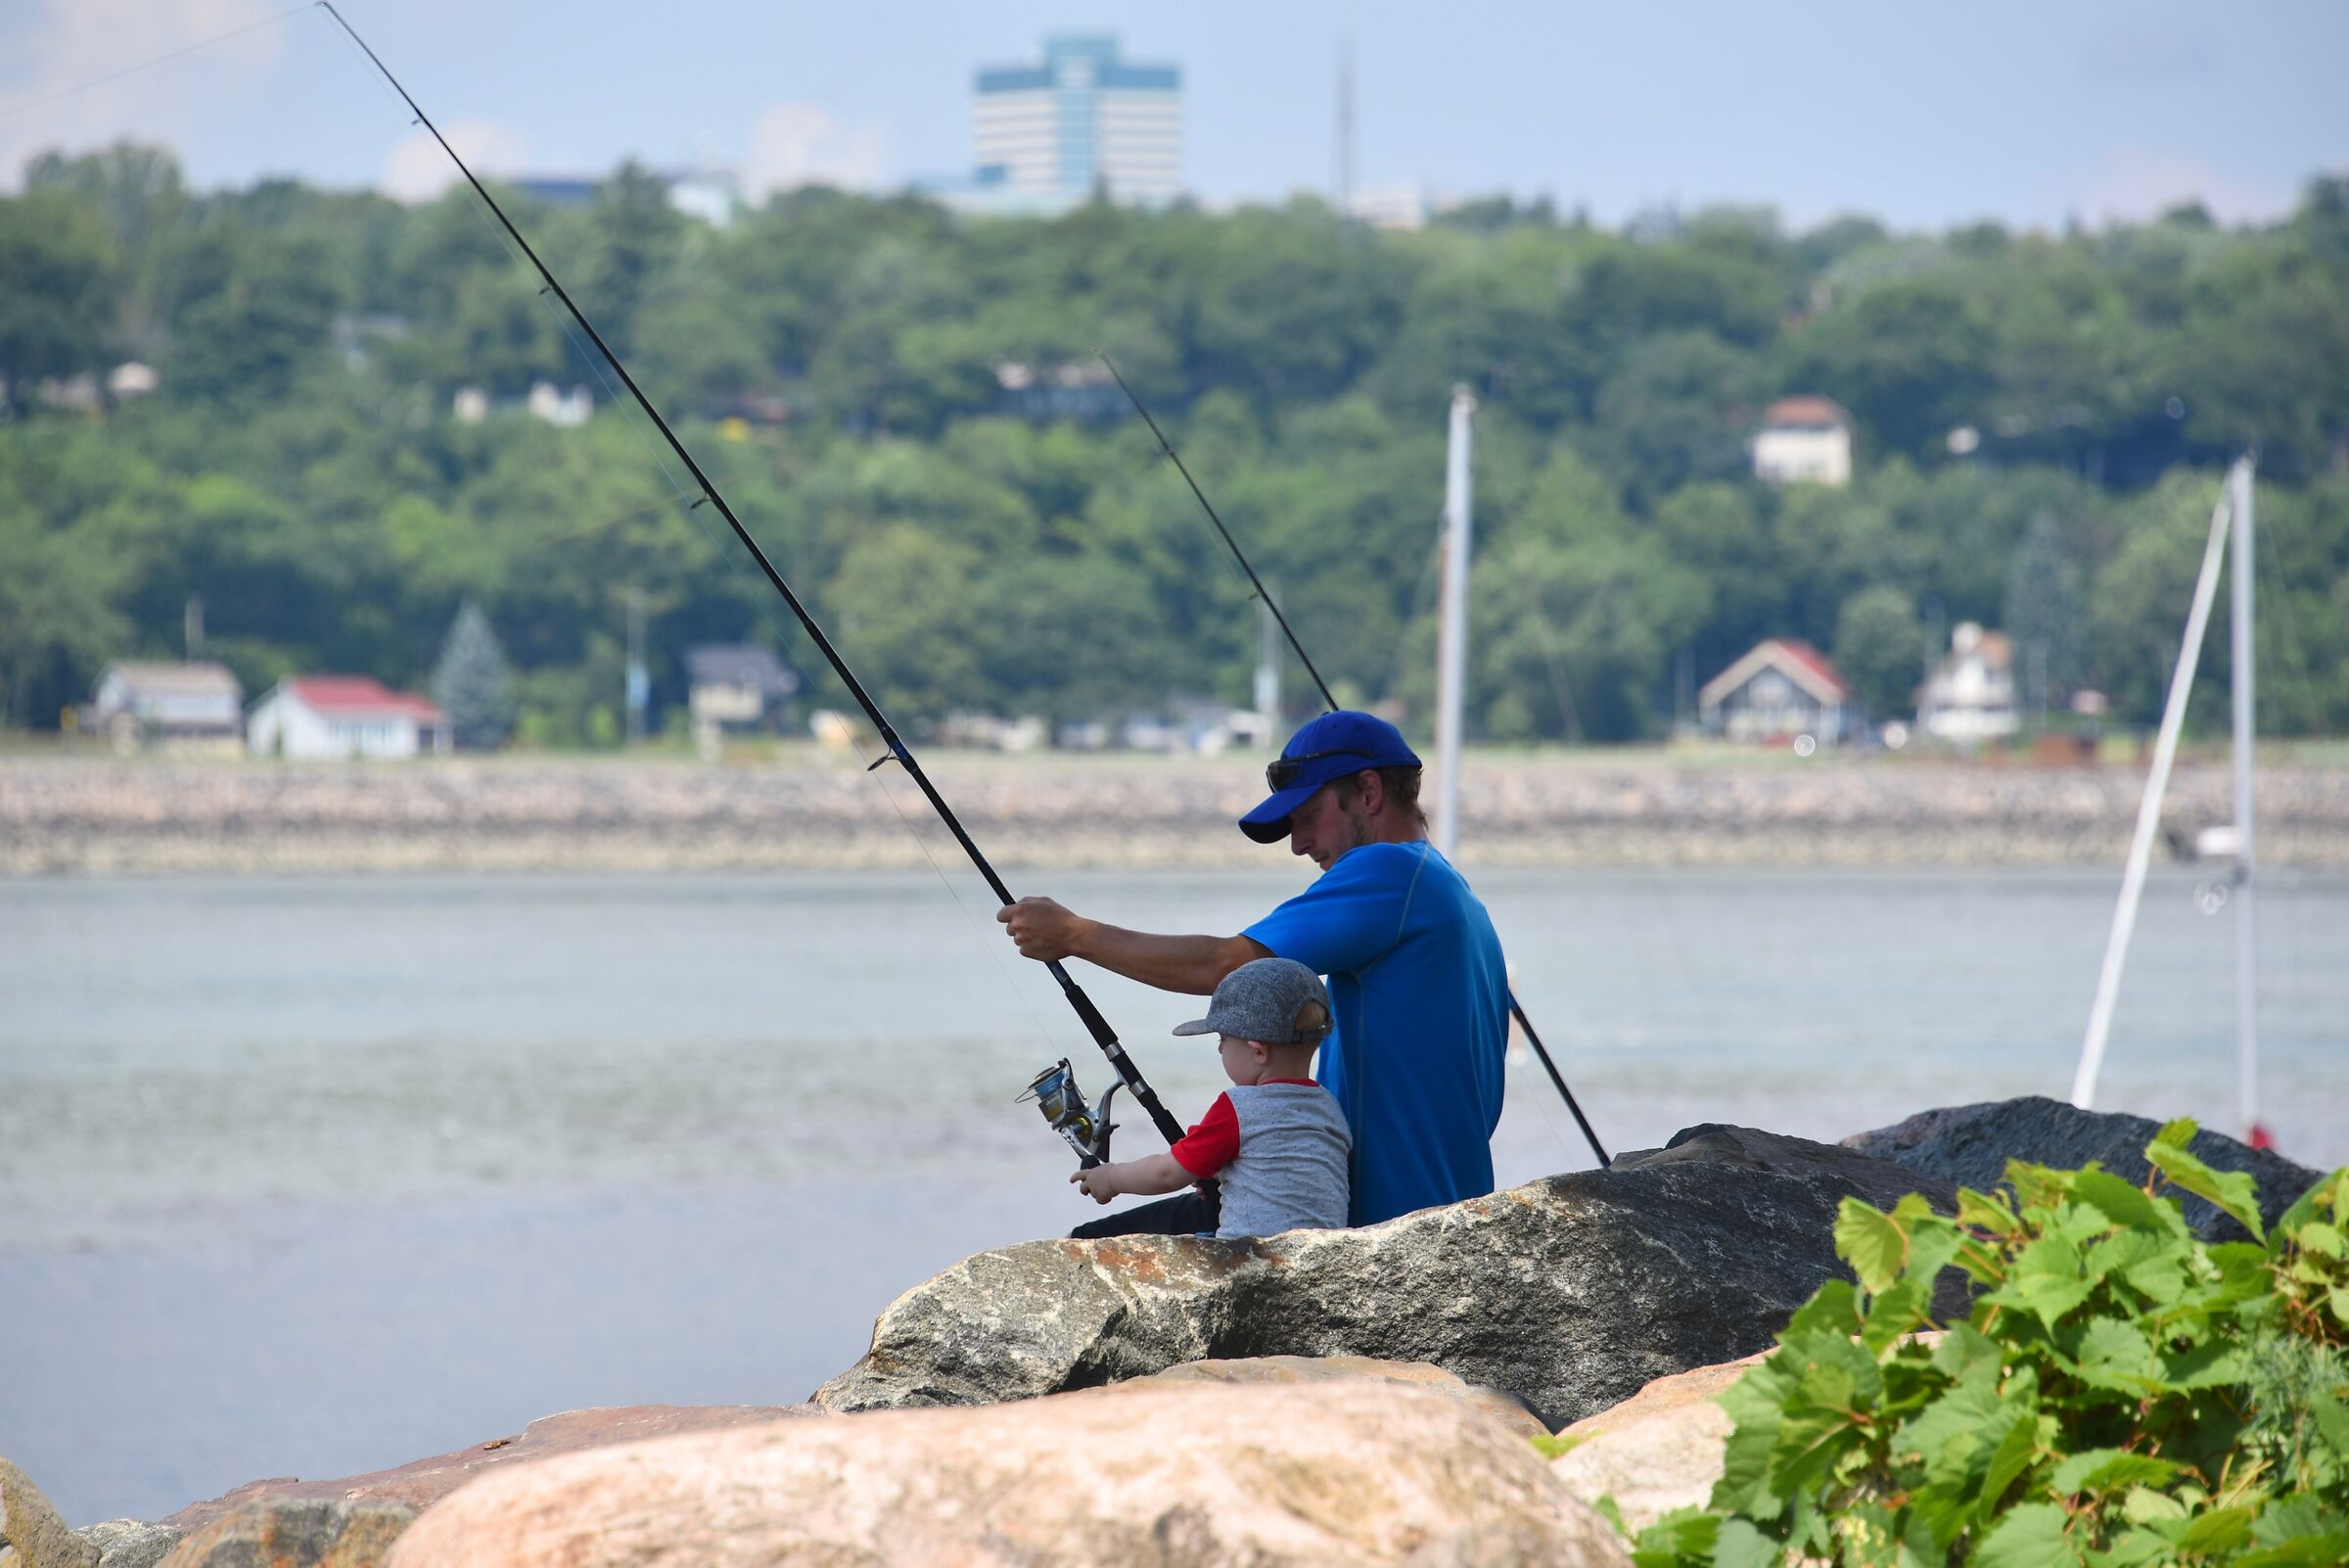 The son and father fishing - Quebec City...